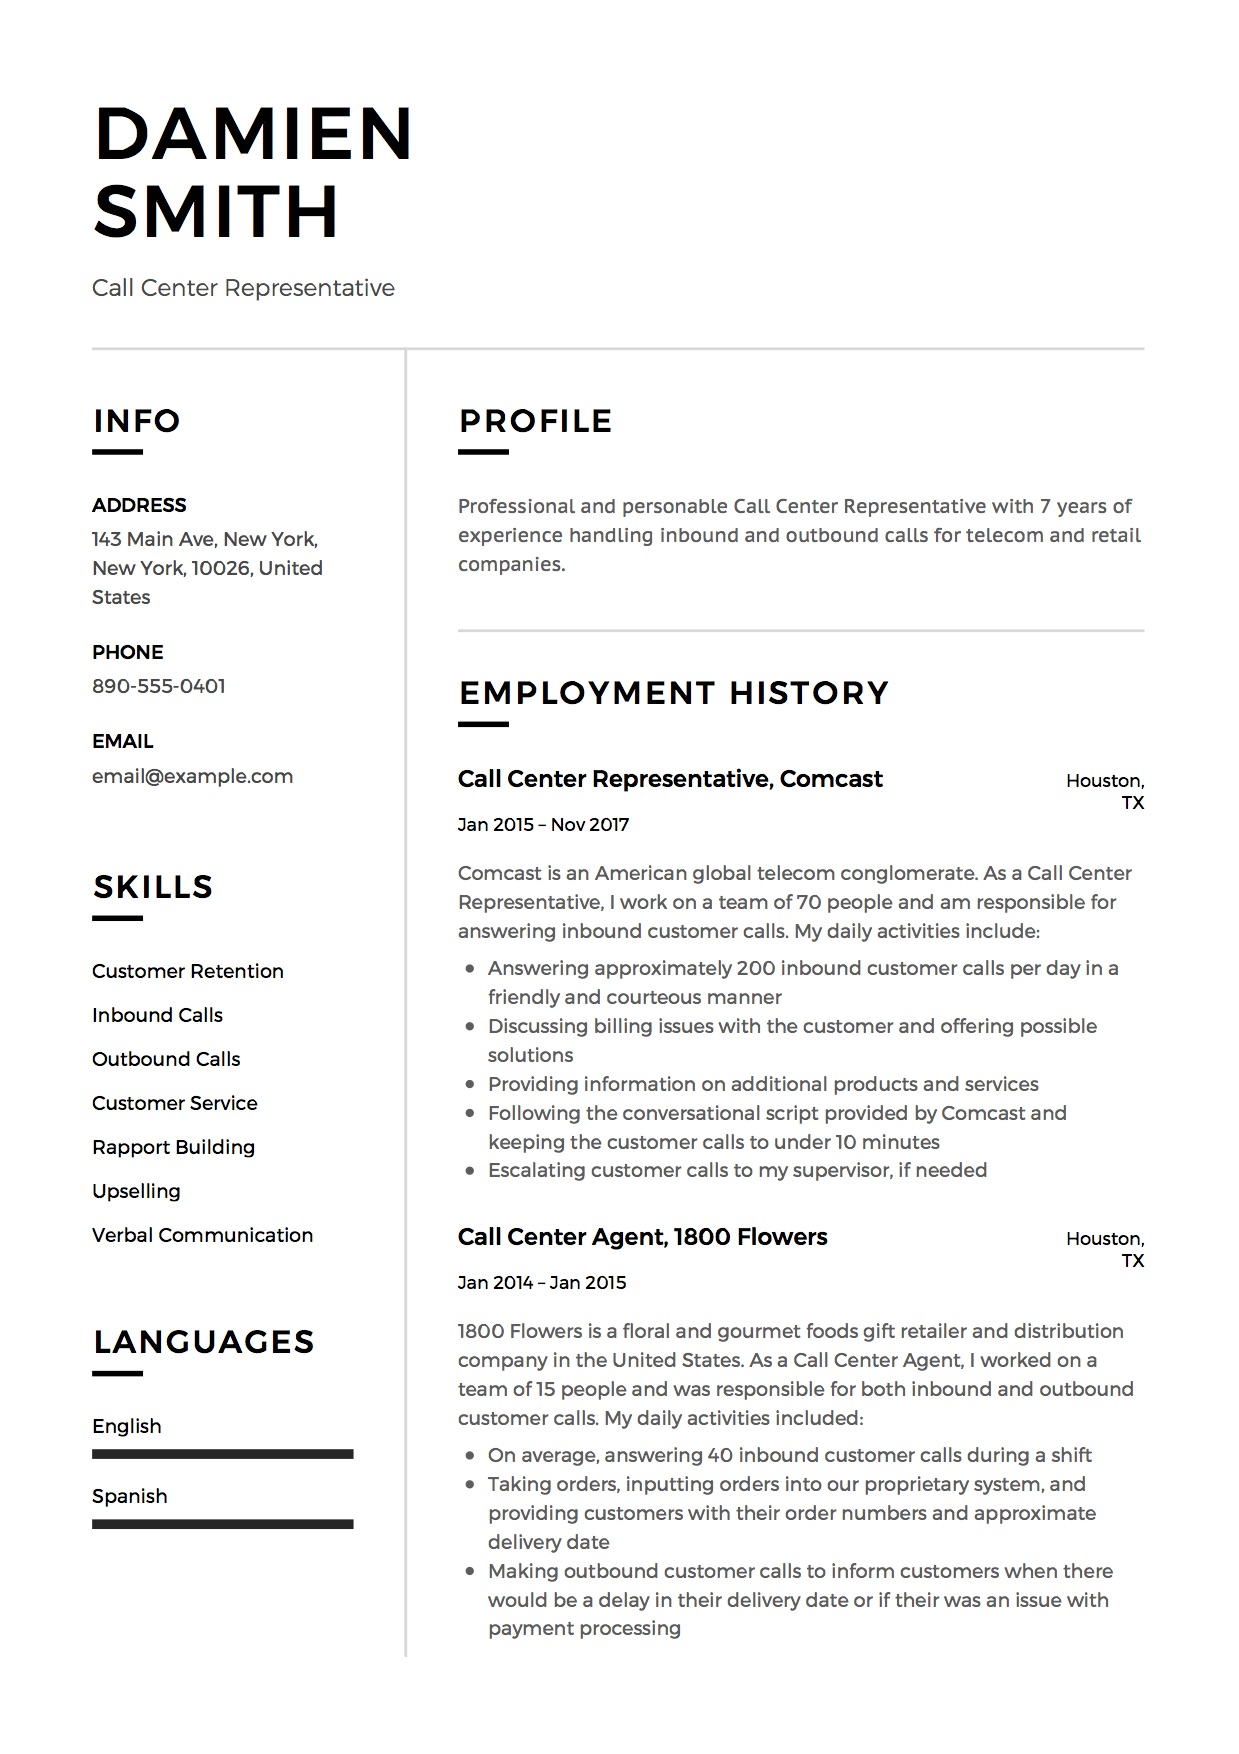 call center resume guide free downloads examples damien representative system analyst Resume Call Center Resume Examples